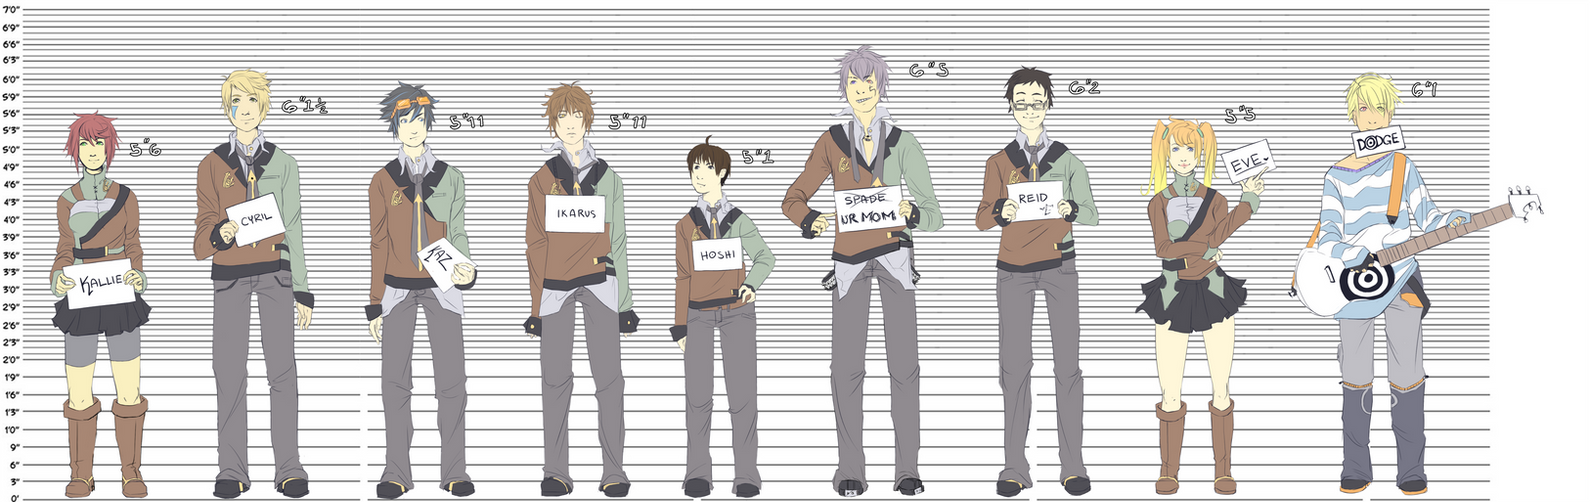 Anime Characters Height : Cipher height chart by owdof on deviantart